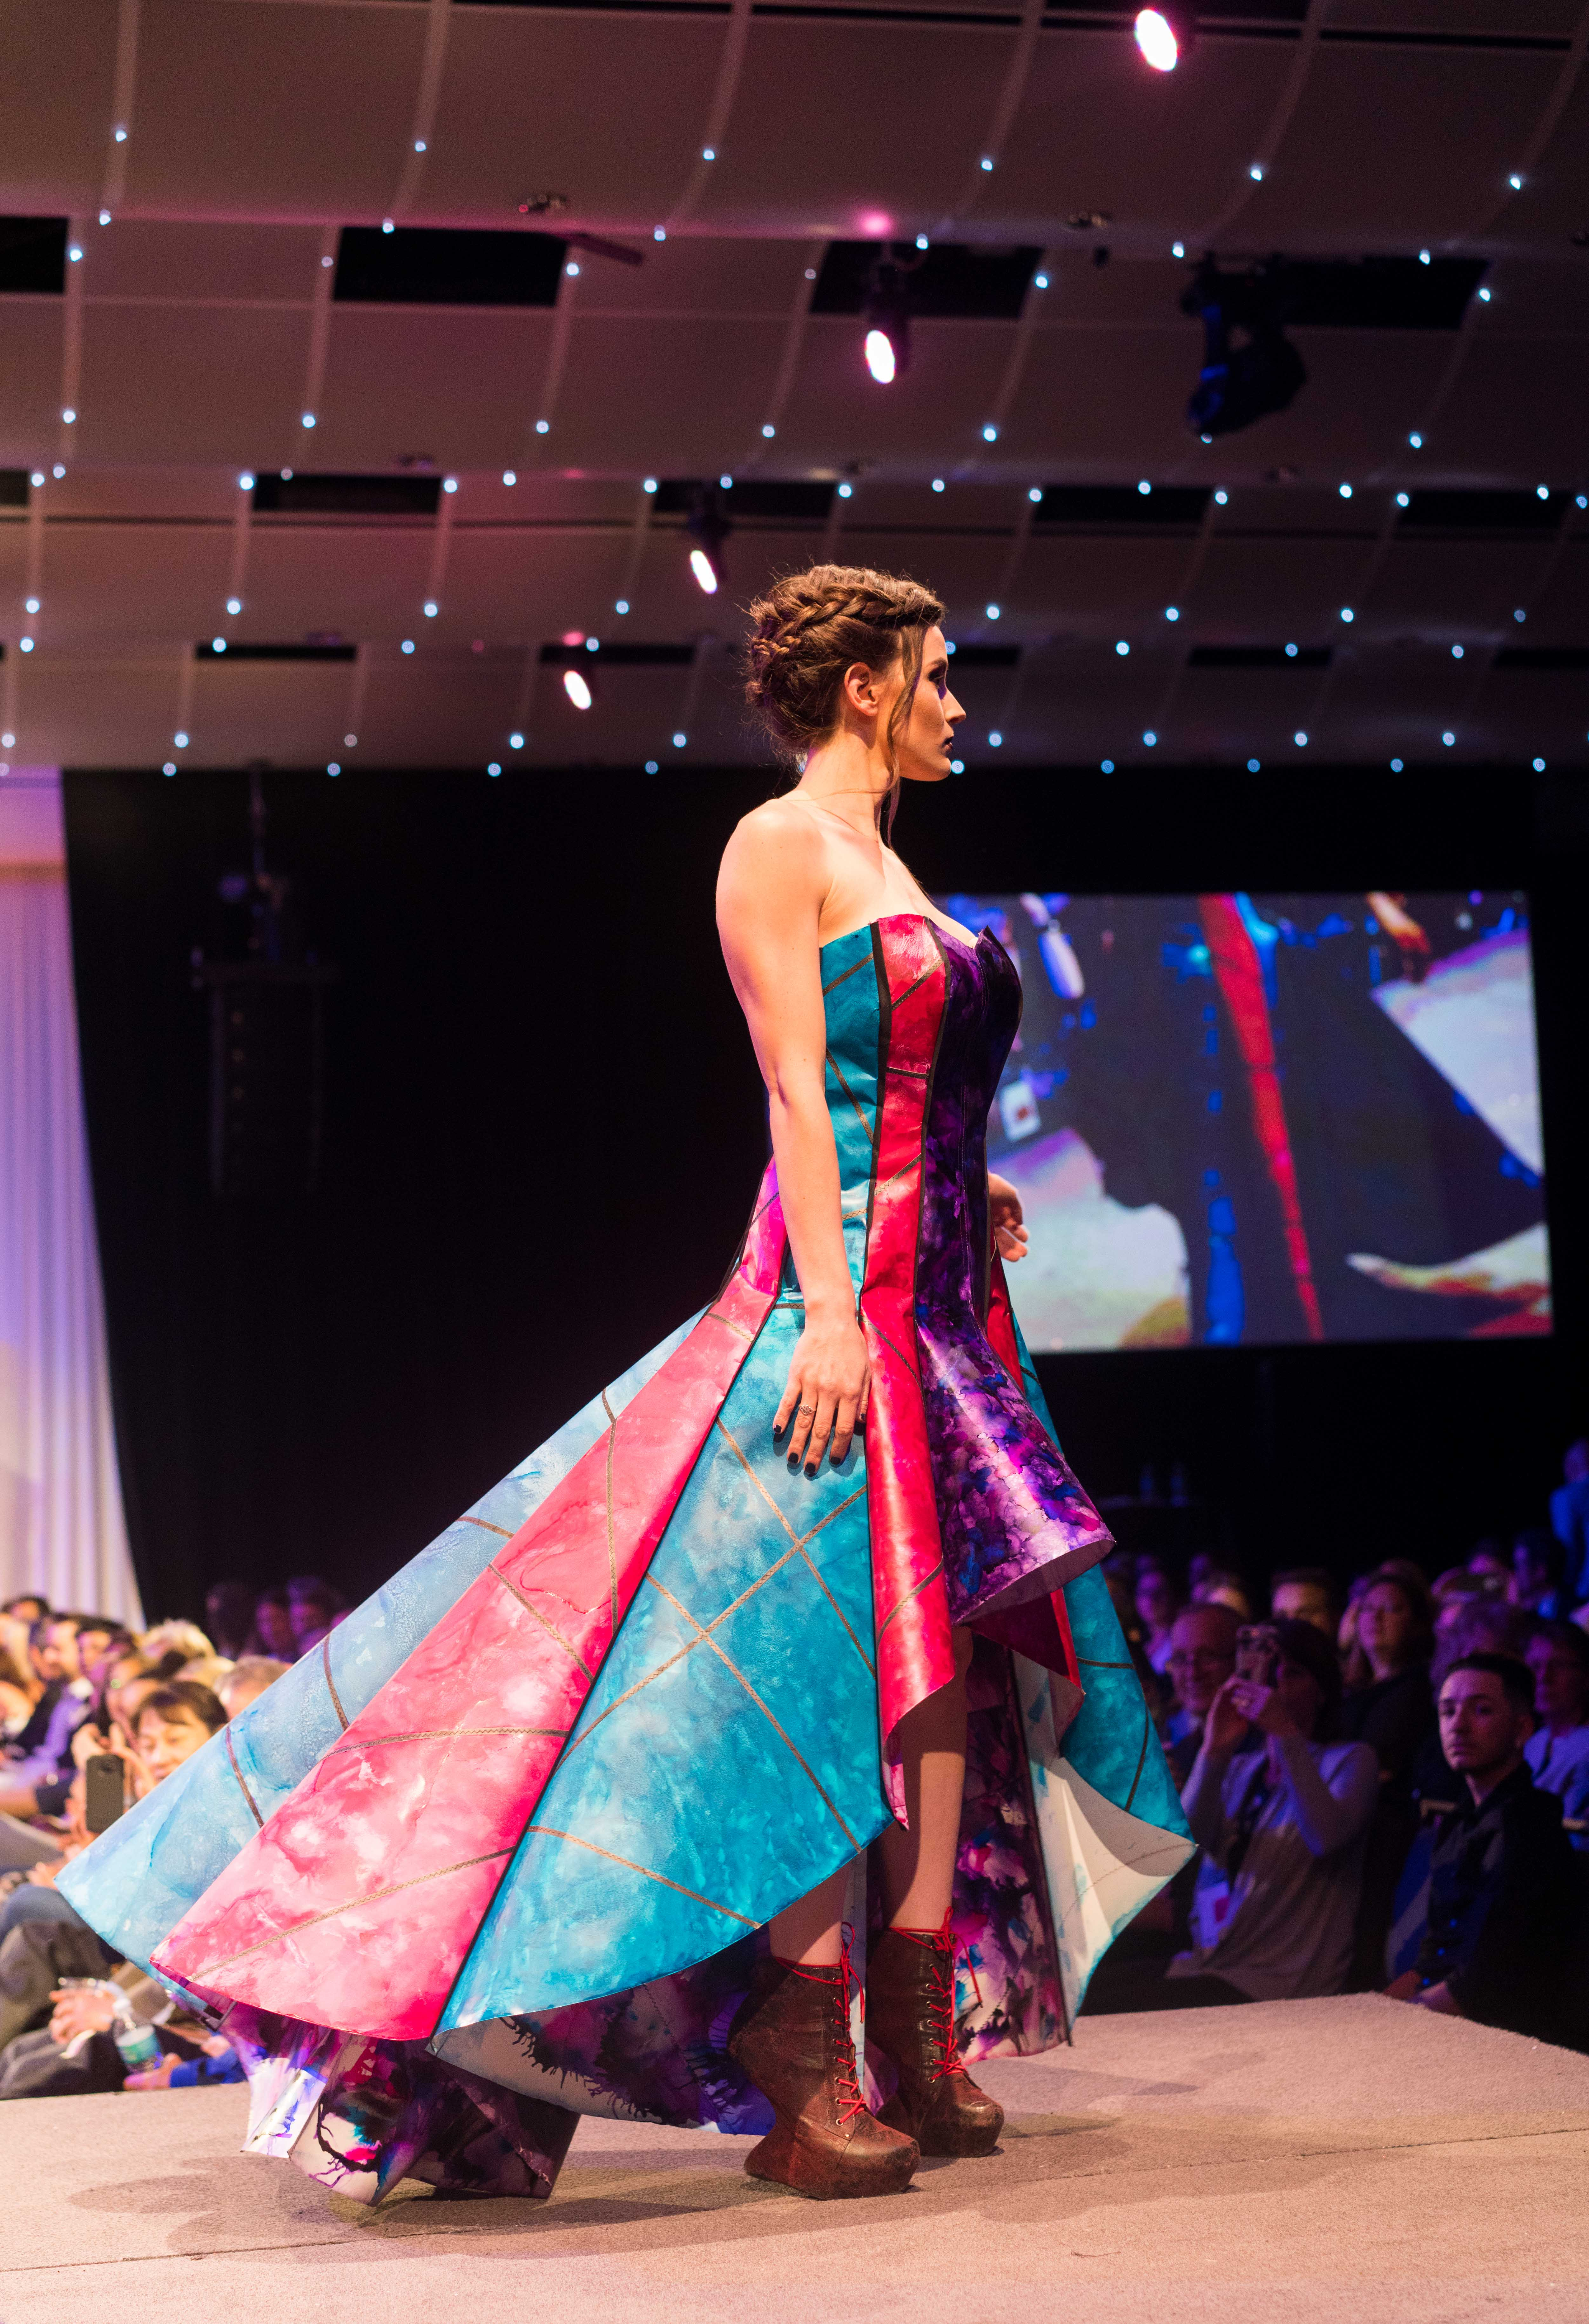 Best Trends: Top Trends From ADCD's 13th Annual Paper Fashion Show